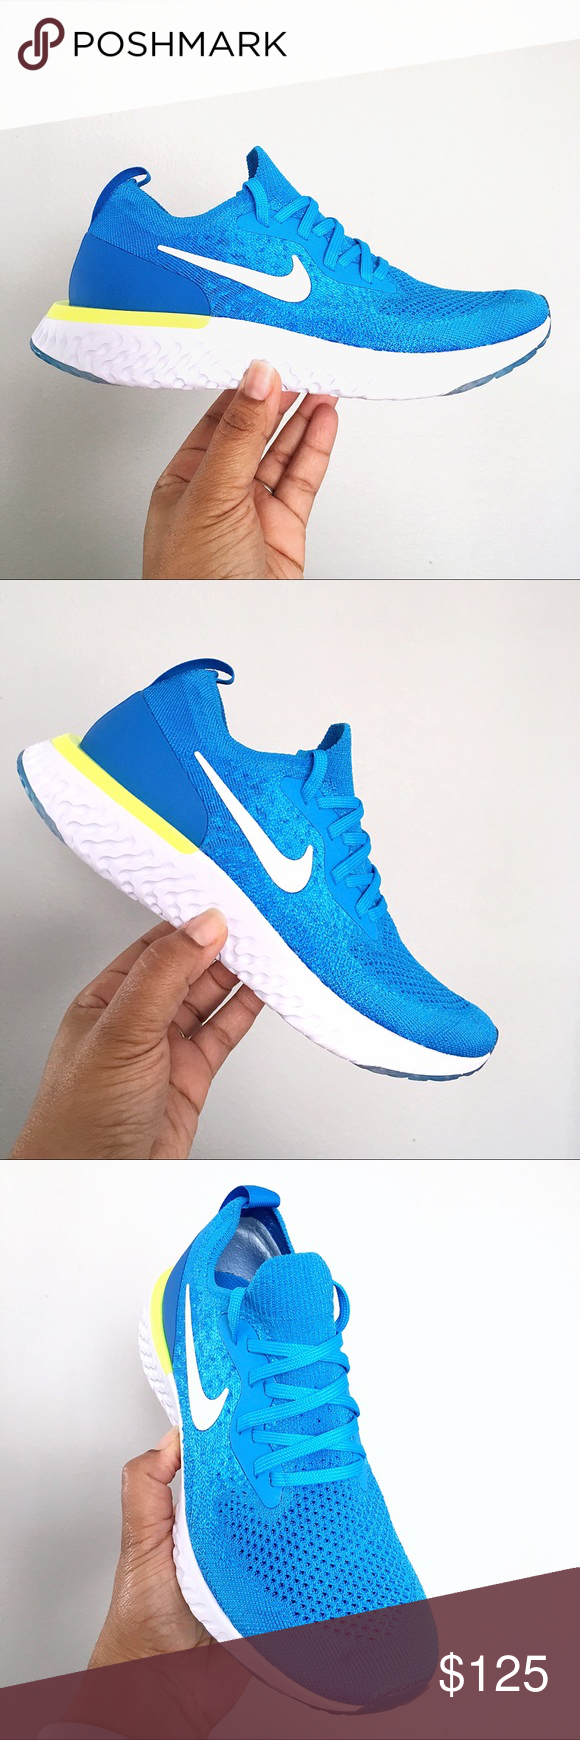 bb4b24057842 Nike Epic React Flyknit GS Brand New in Box   no lid - Nike Epic React  Flyknit - Color  Blue Glow White - Photo Blue - Rubber outsole - Mesh Upper  ...